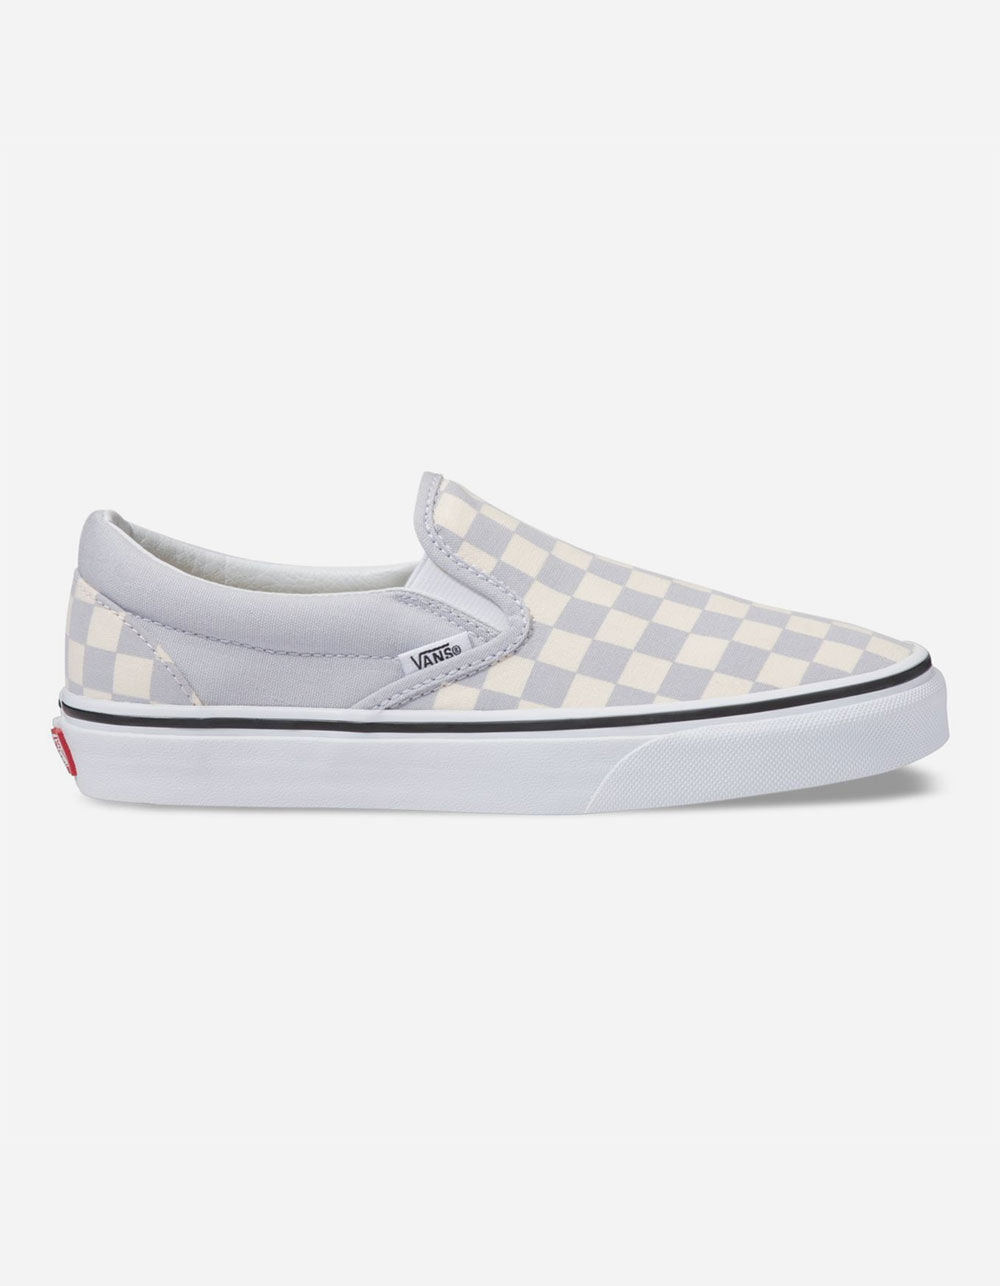 VANS Checkerboard Gray Dawn & True White Slip-On Shoes